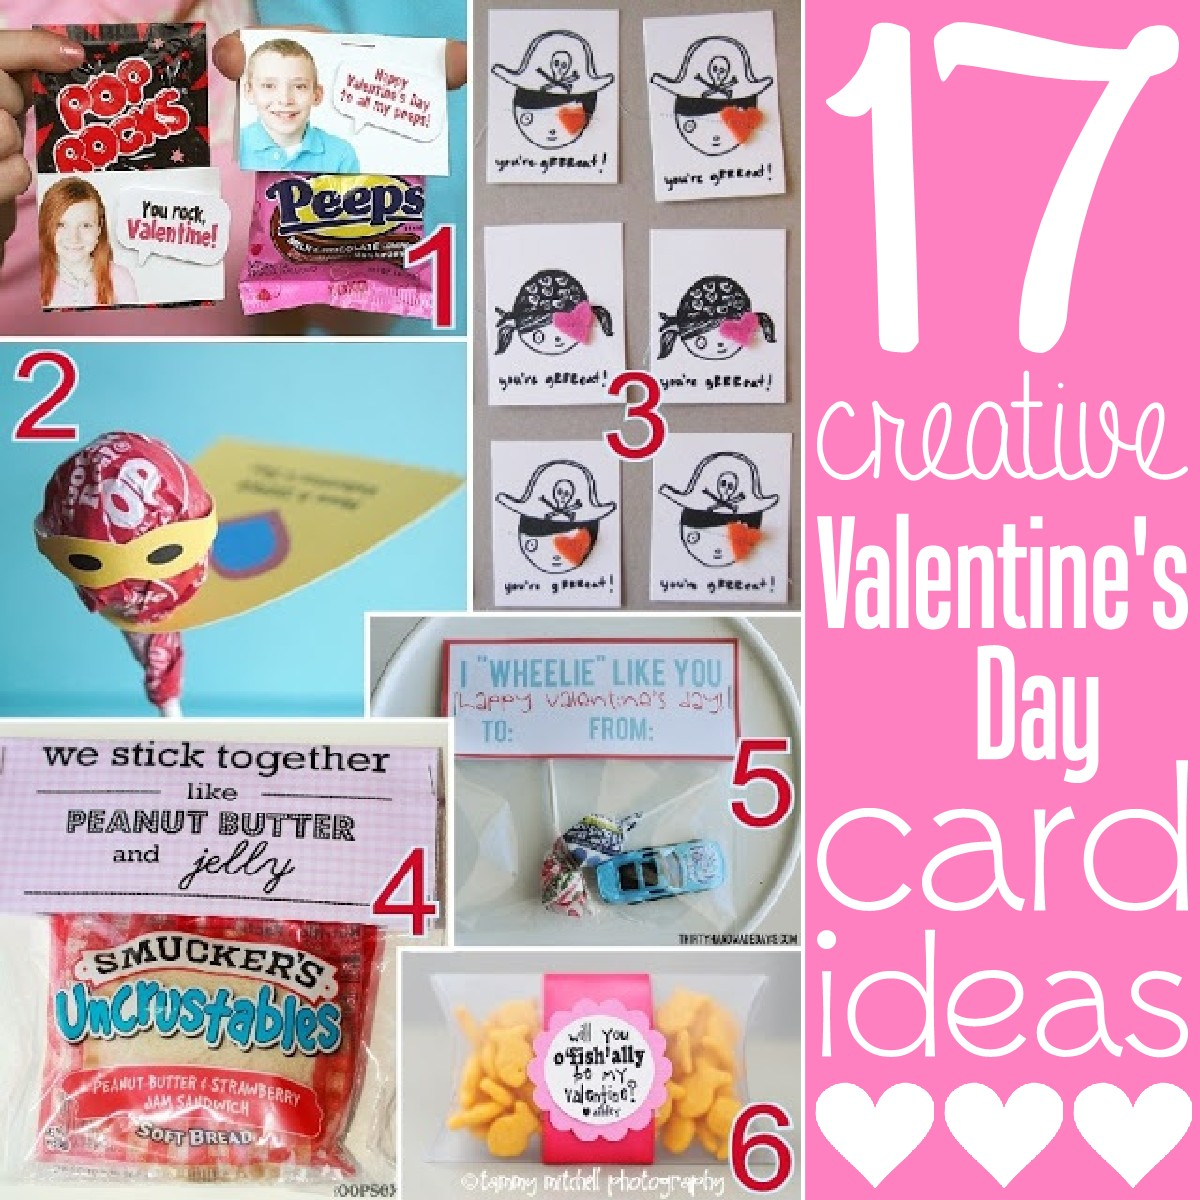 17 valentine card ideas the scrap shoppe for Valentine day card ideas